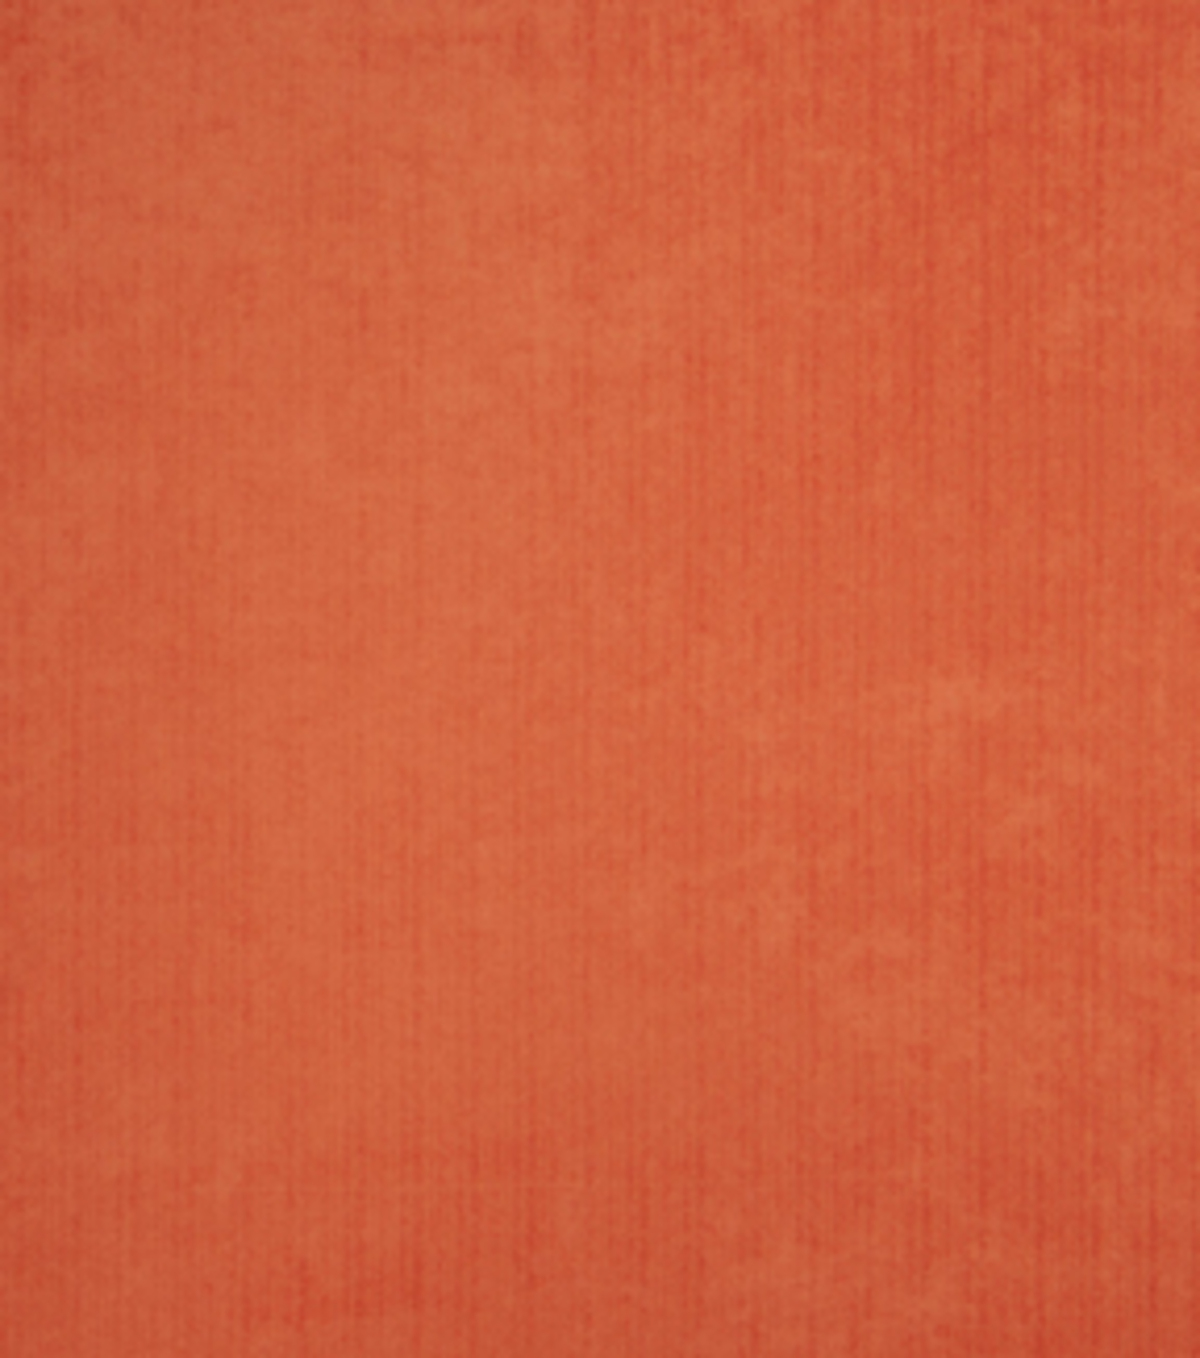 Home Decor 8\u0022x8\u0022 Fabric Swatch-Eaton Square Outdoor-Velvet   Coral